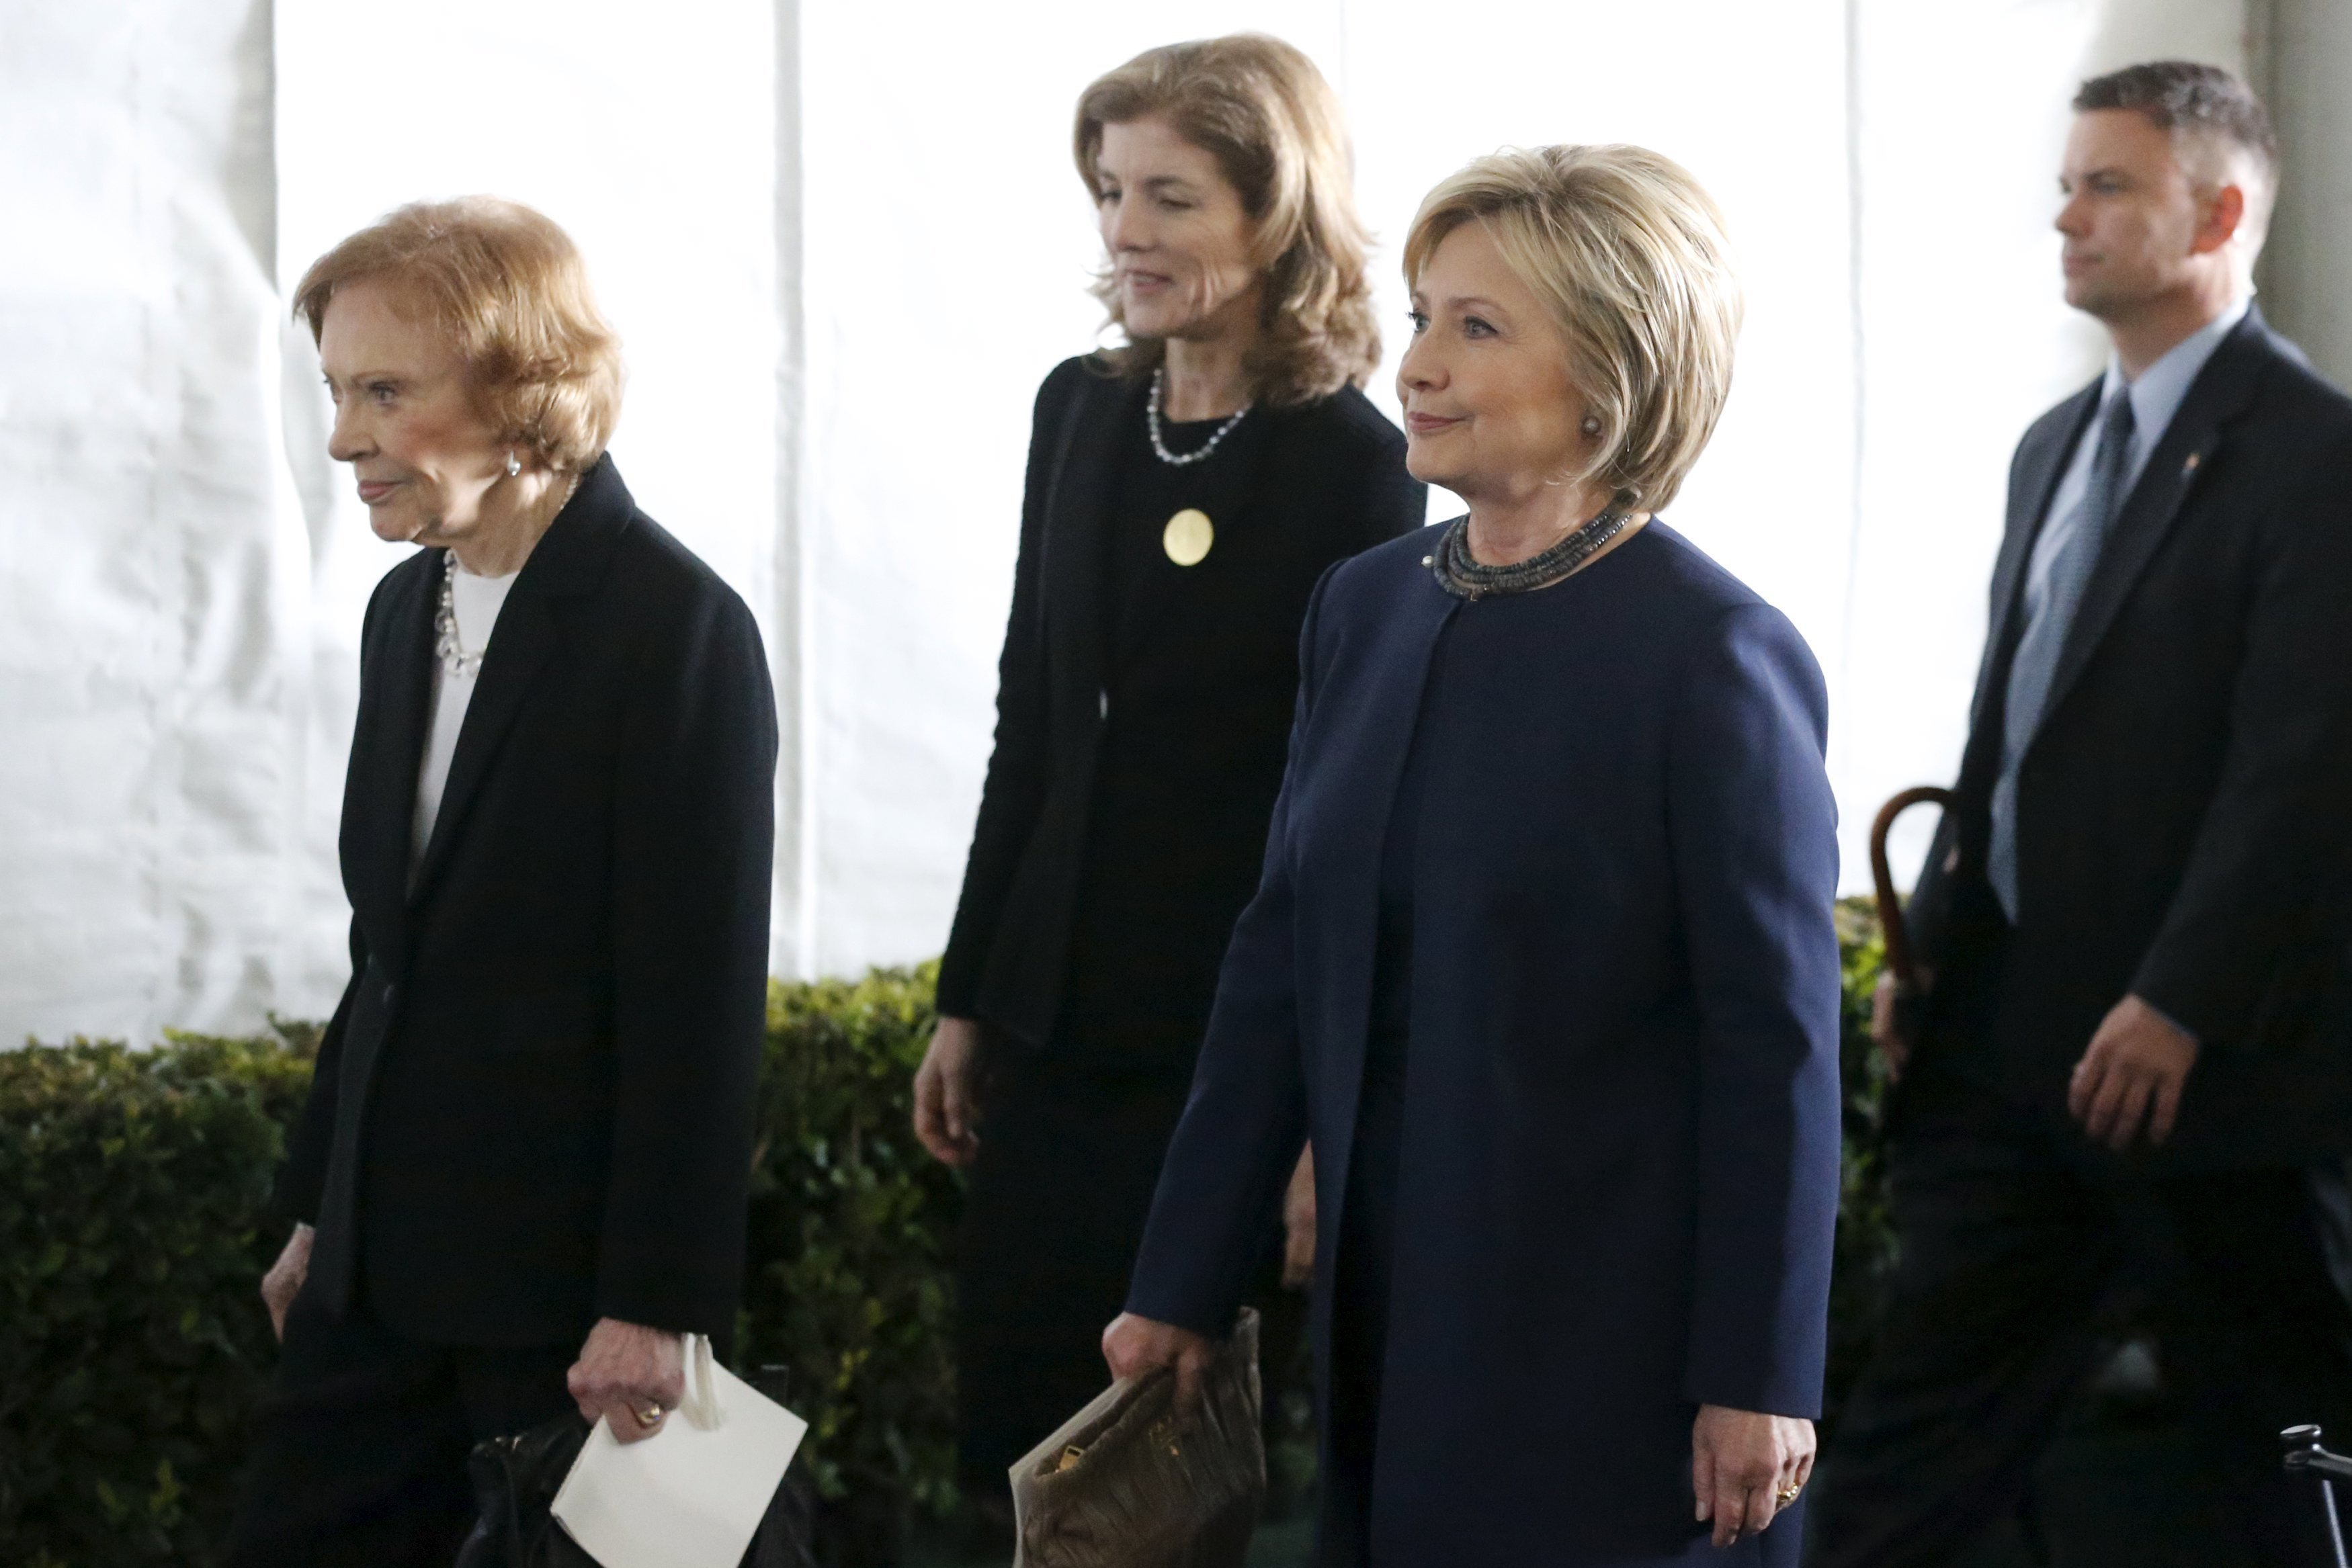 From left, Former first lady Rosalynn Carter, Caroline Kennedy, and Hillary Clinton walk to the grave site after the funeral at the Ronald Reagan Presidential Library, March 11, 2016.